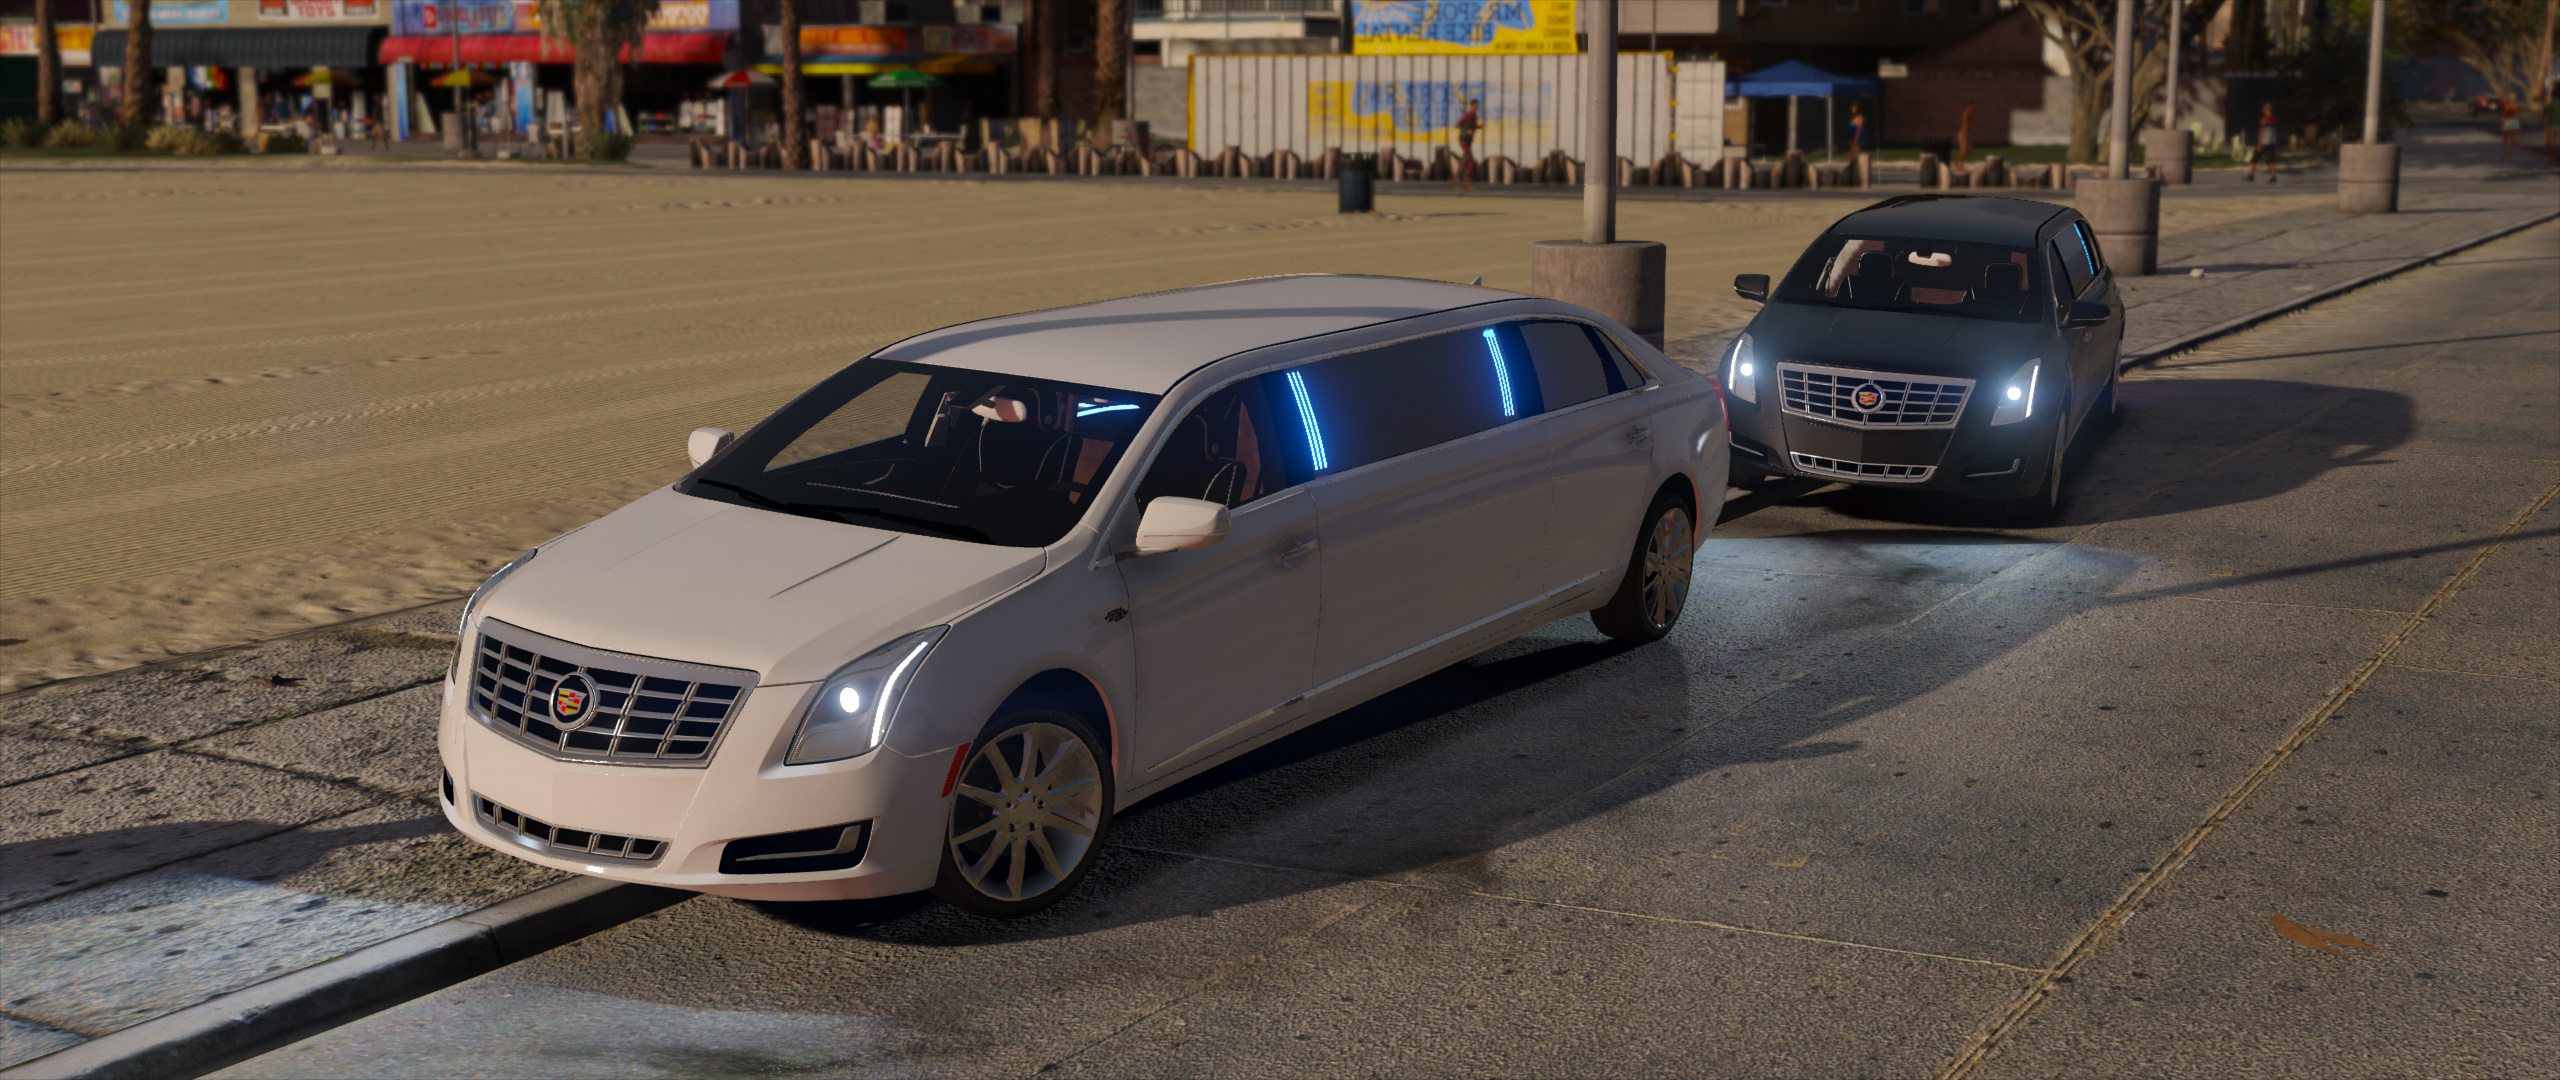 cadillac xts limousine beta gta5. Black Bedroom Furniture Sets. Home Design Ideas